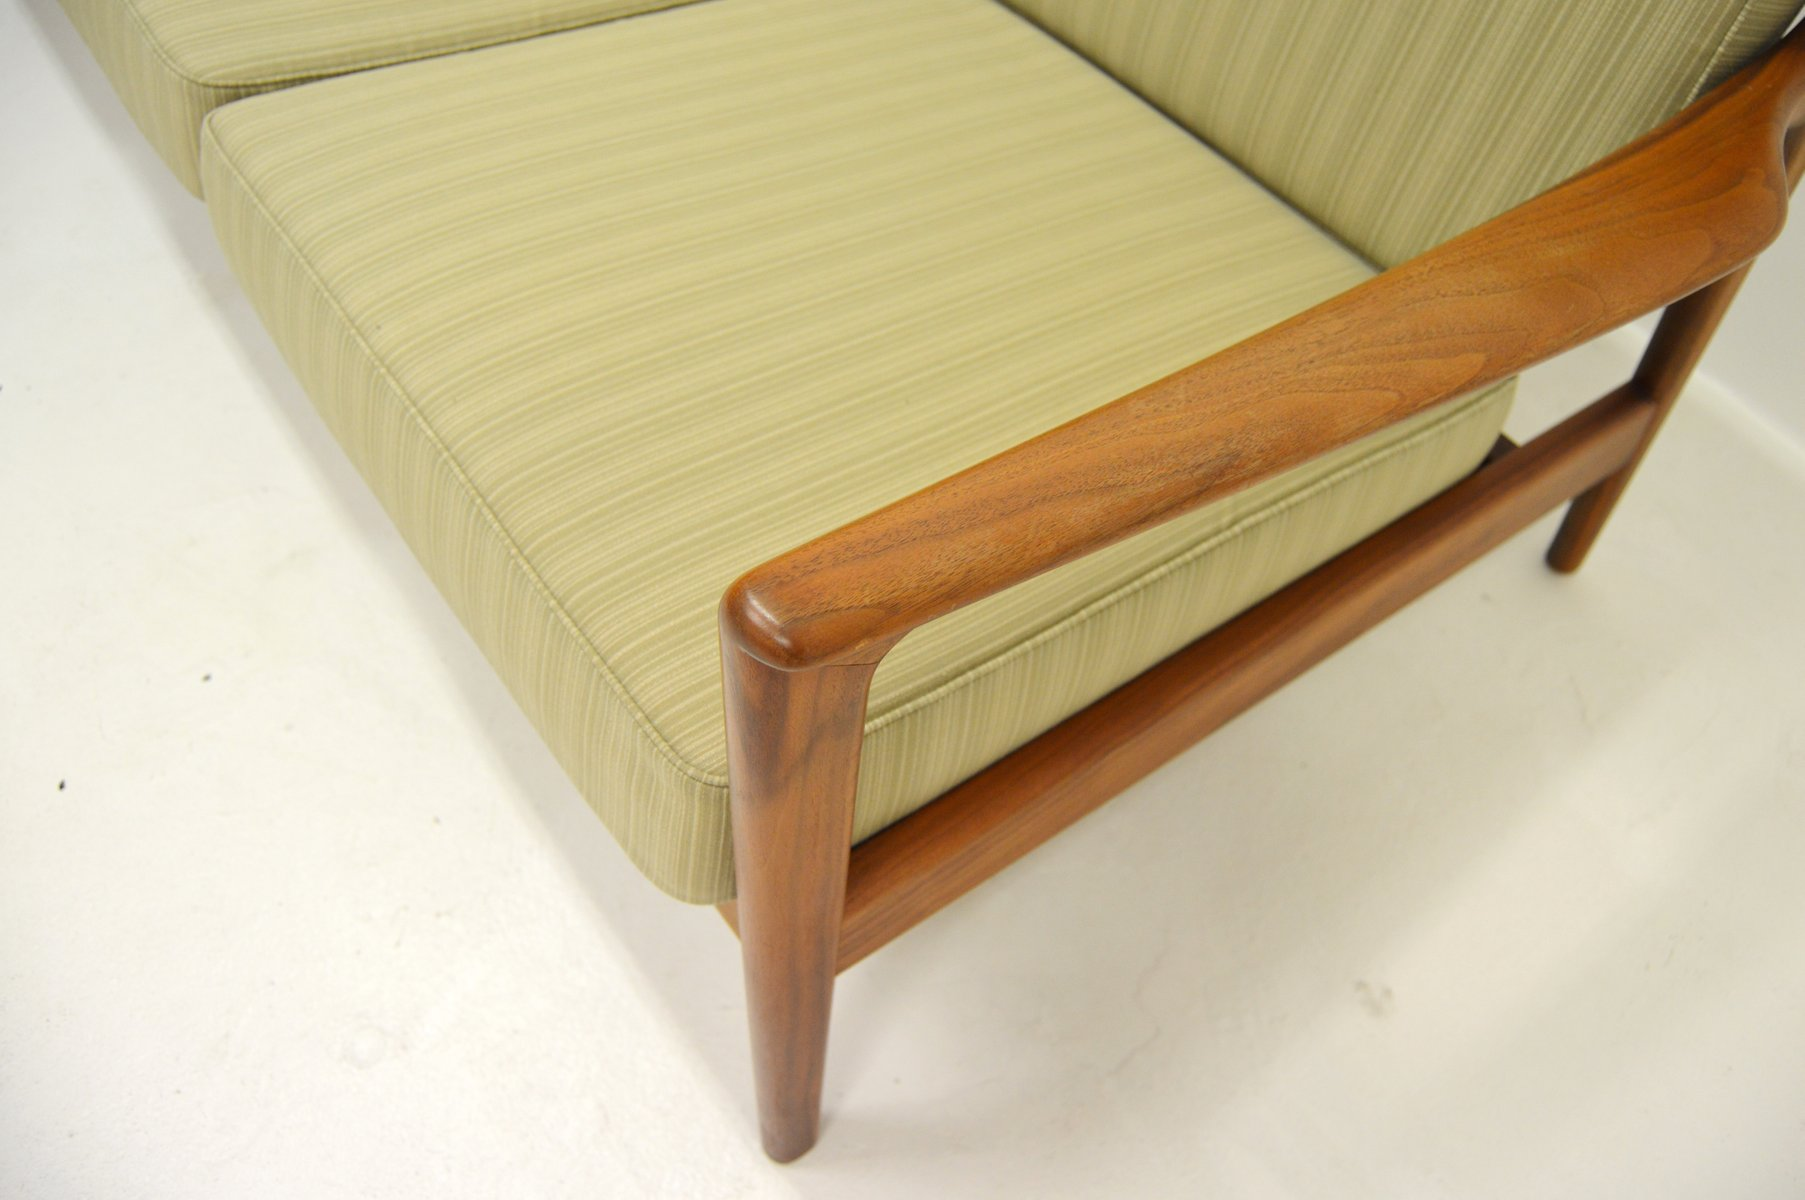 dux sofa by folke ohlsson wall beds with usa 75 for 1963 sale at pamono